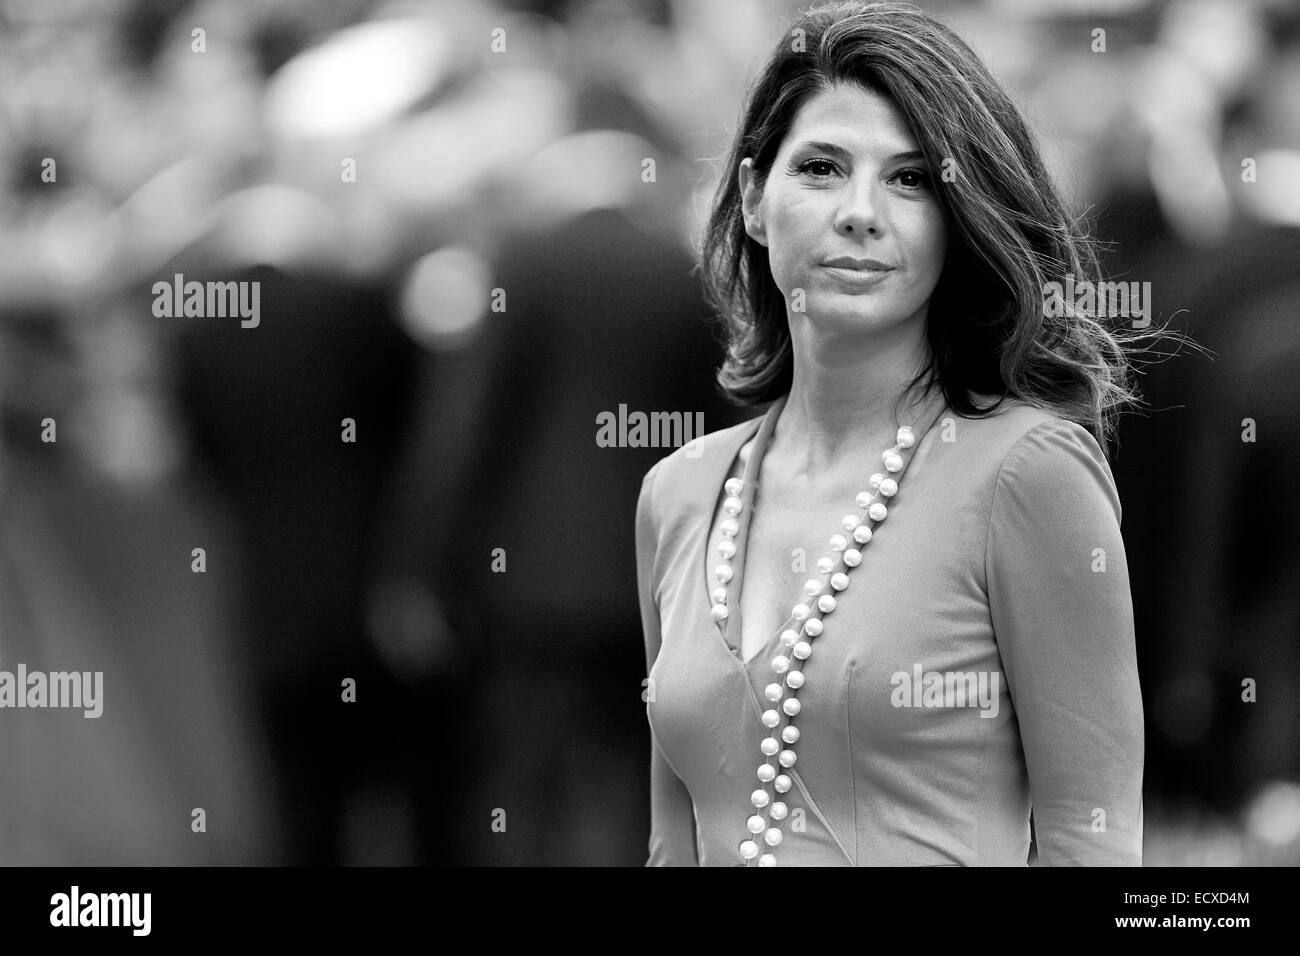 VENICE, ITALY - AUGUST 31: Actress Marisa Tomei  attends 'The Ides Of March' premiere during the 68th Venice - Stock Image